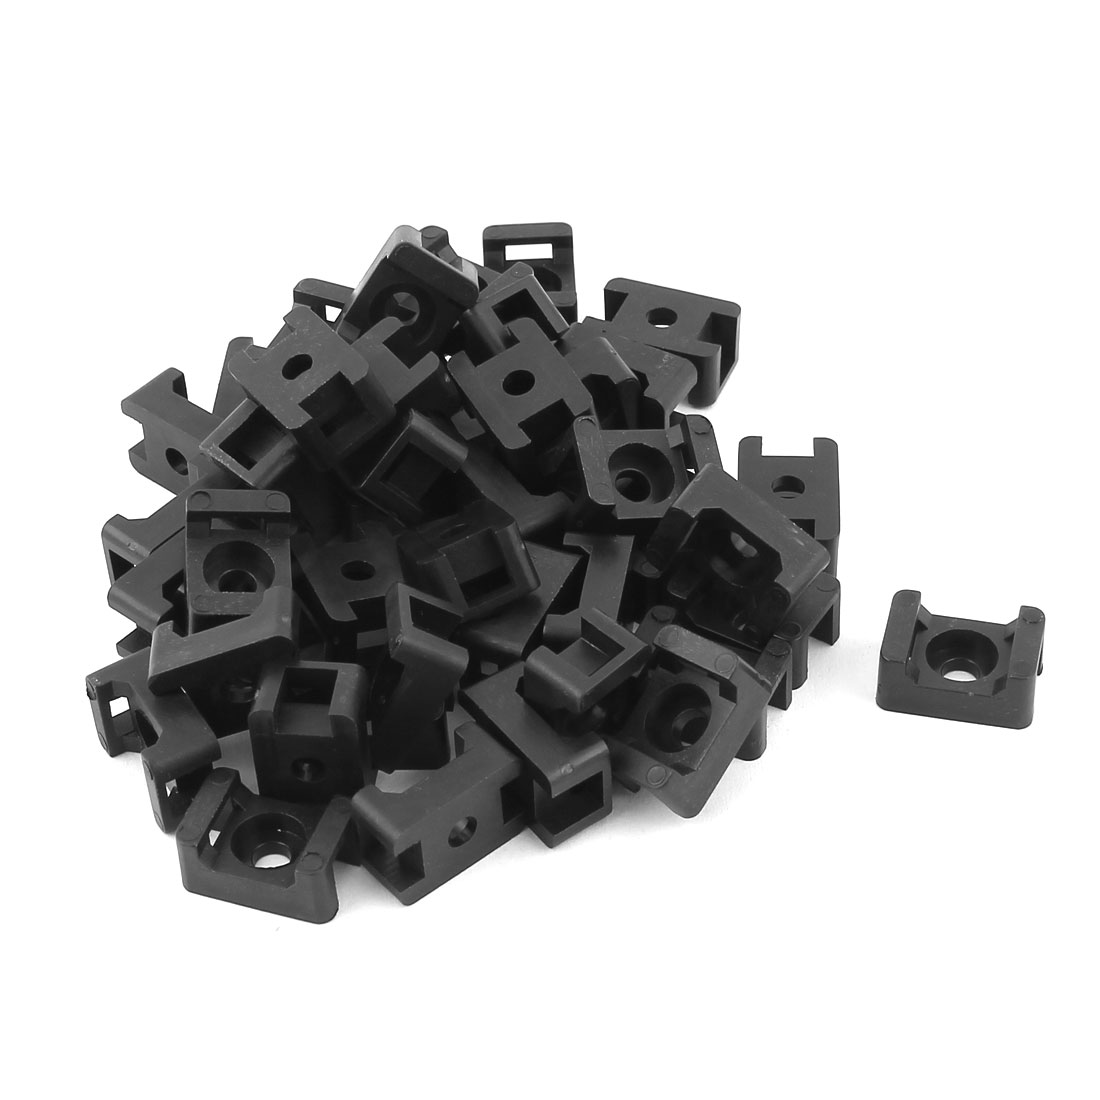 45pcs Black Plastic Screw Mounts Saddles Bases Cable Tie Cradle Holder